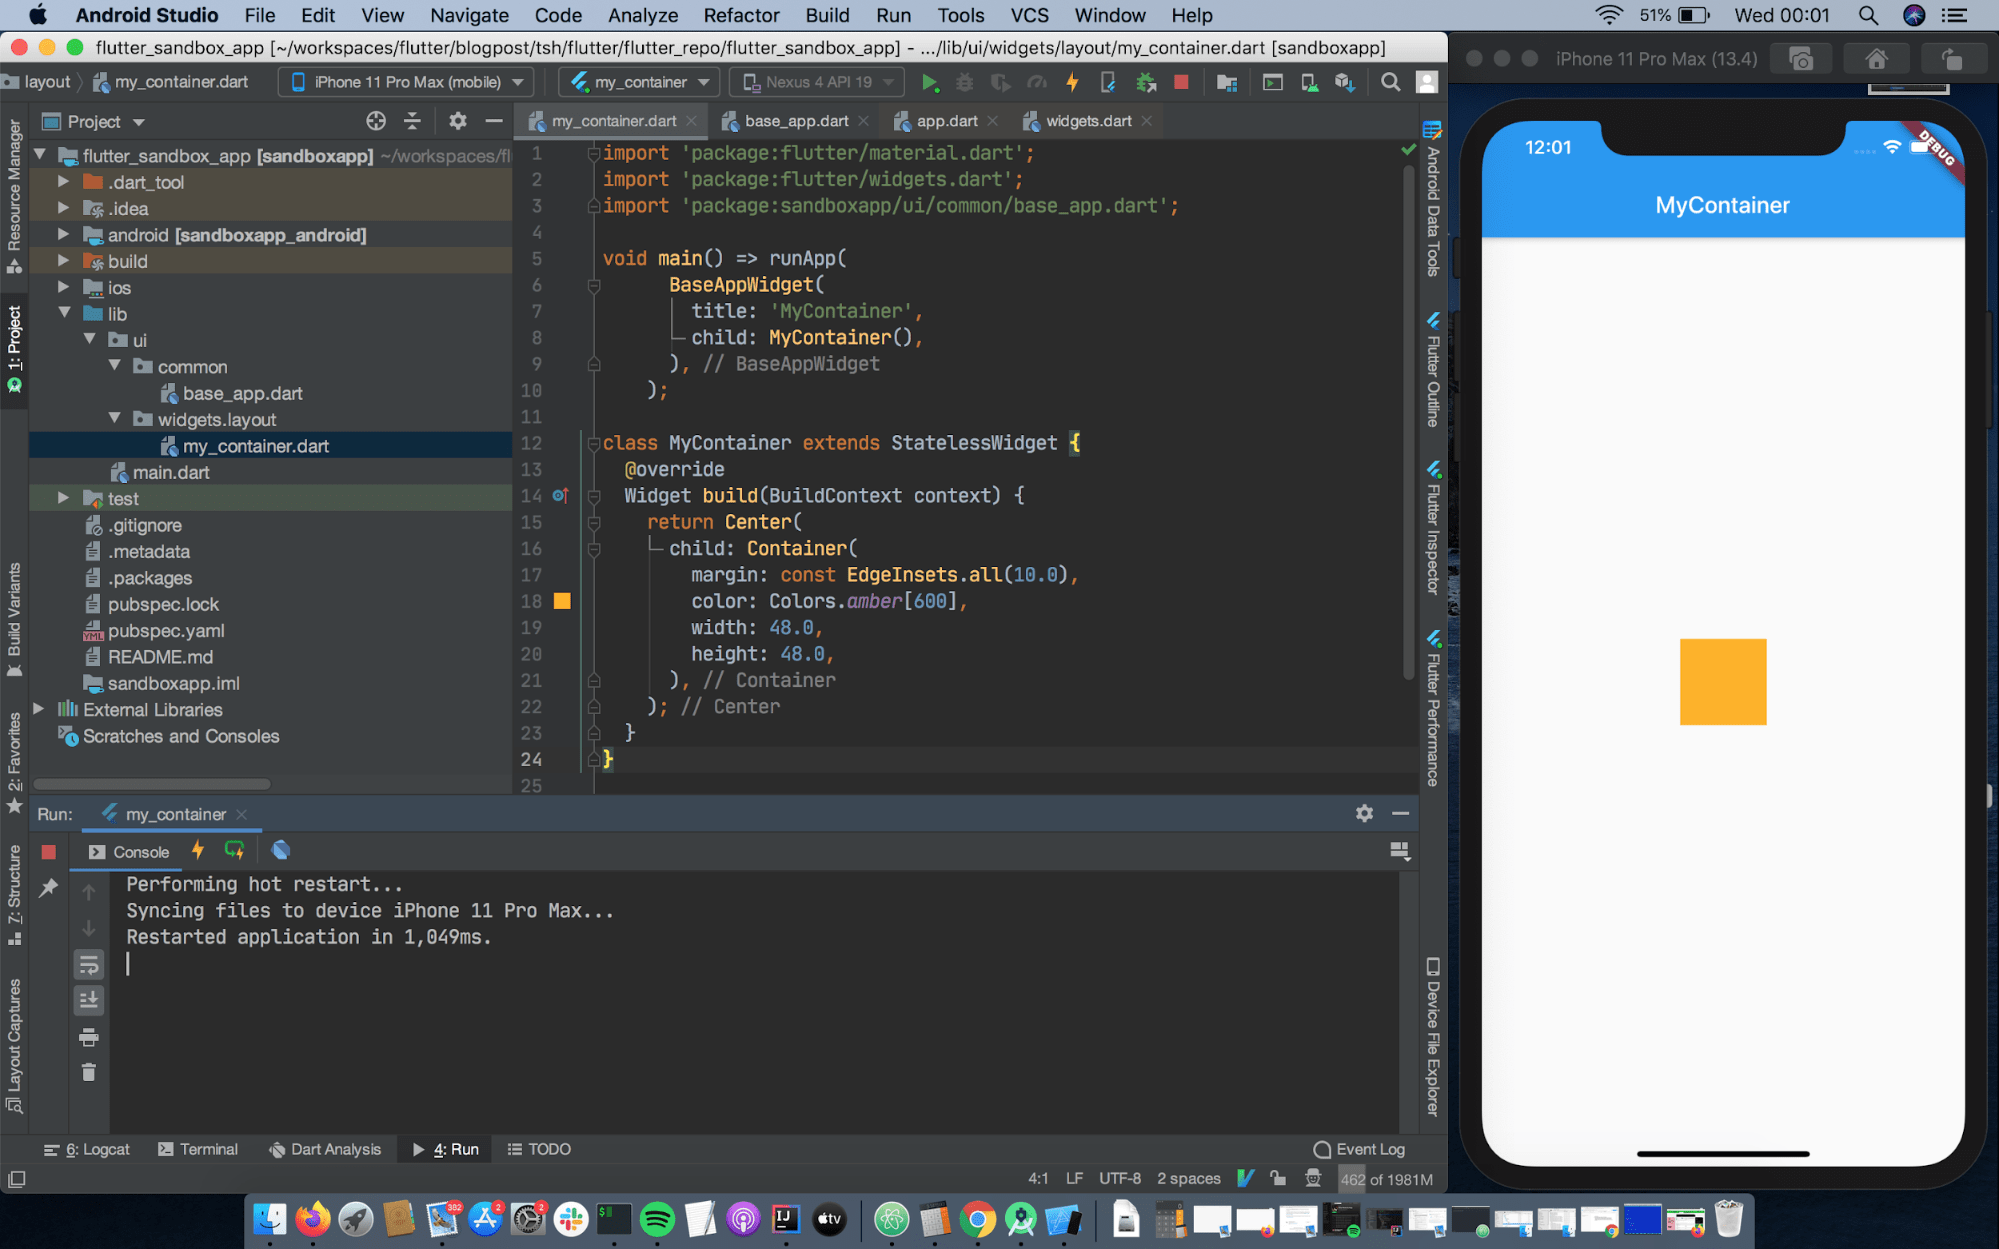 Another screenshot of iOS simulator displaying an app in Flutter tutorial